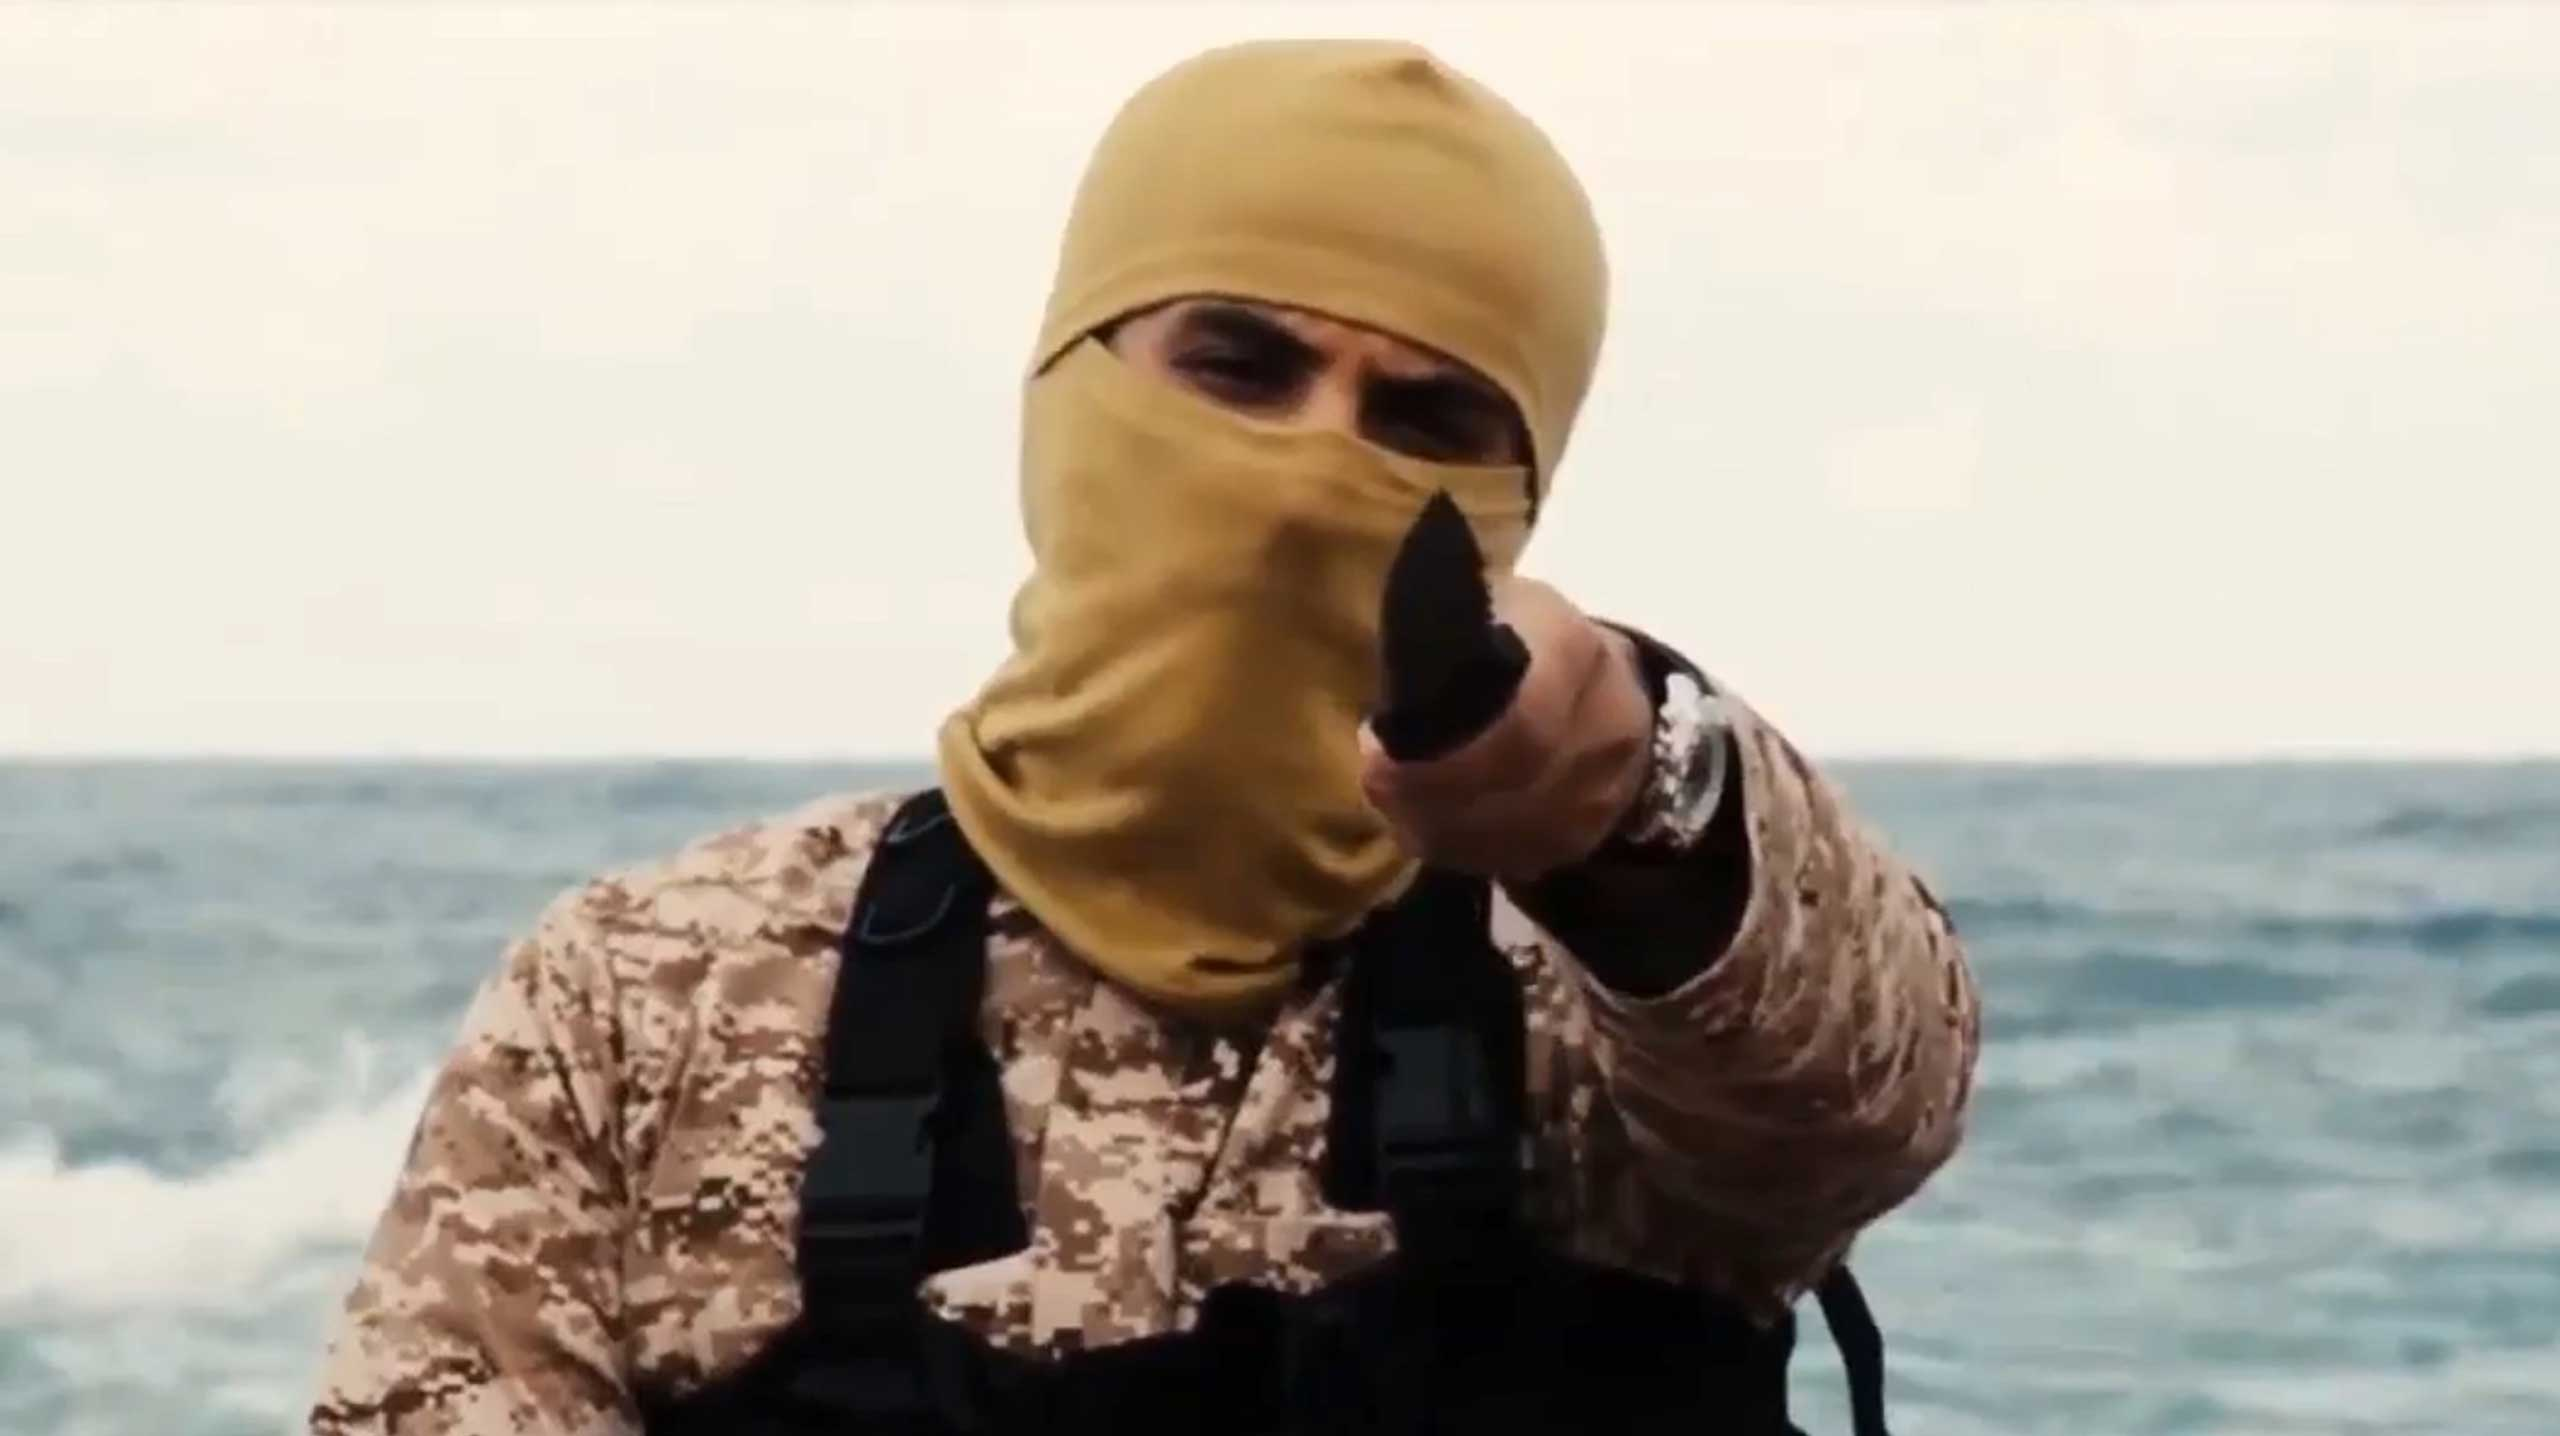 Screengrab from an ISIS video made in Libya and released on Feb. 15, 2015.